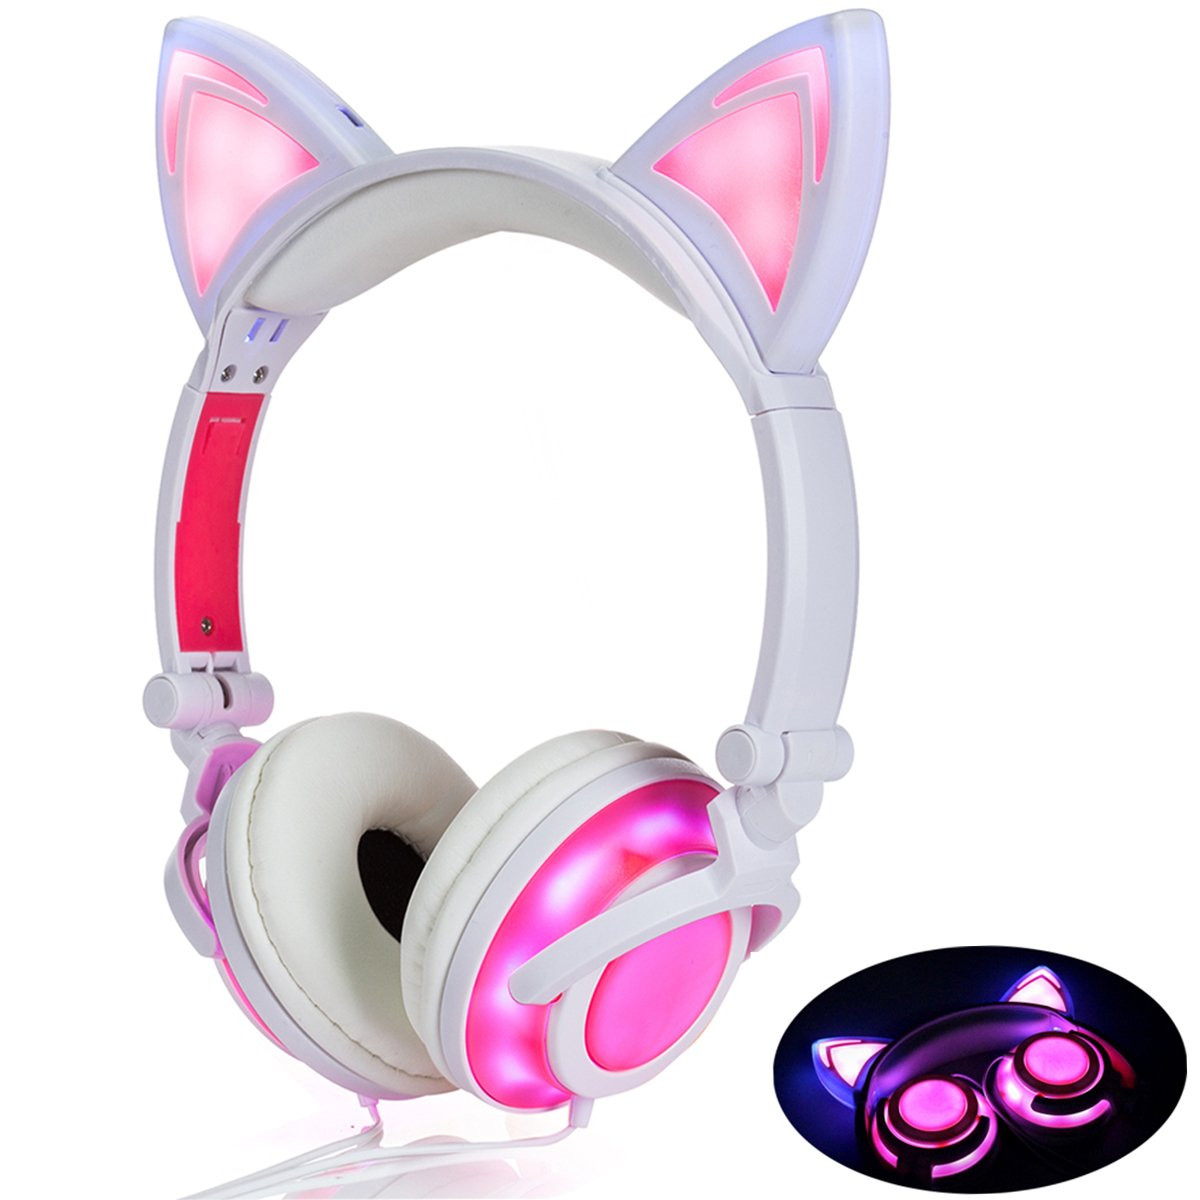 Headphone Cat Ear Headset,LED Light with USB Chargeable Foldable Earphones for Kids Teens Adults, Compatible for Ipad,Tablet,Computer,Mobile Phone LX-R107 (Black&Pink) LIMSON